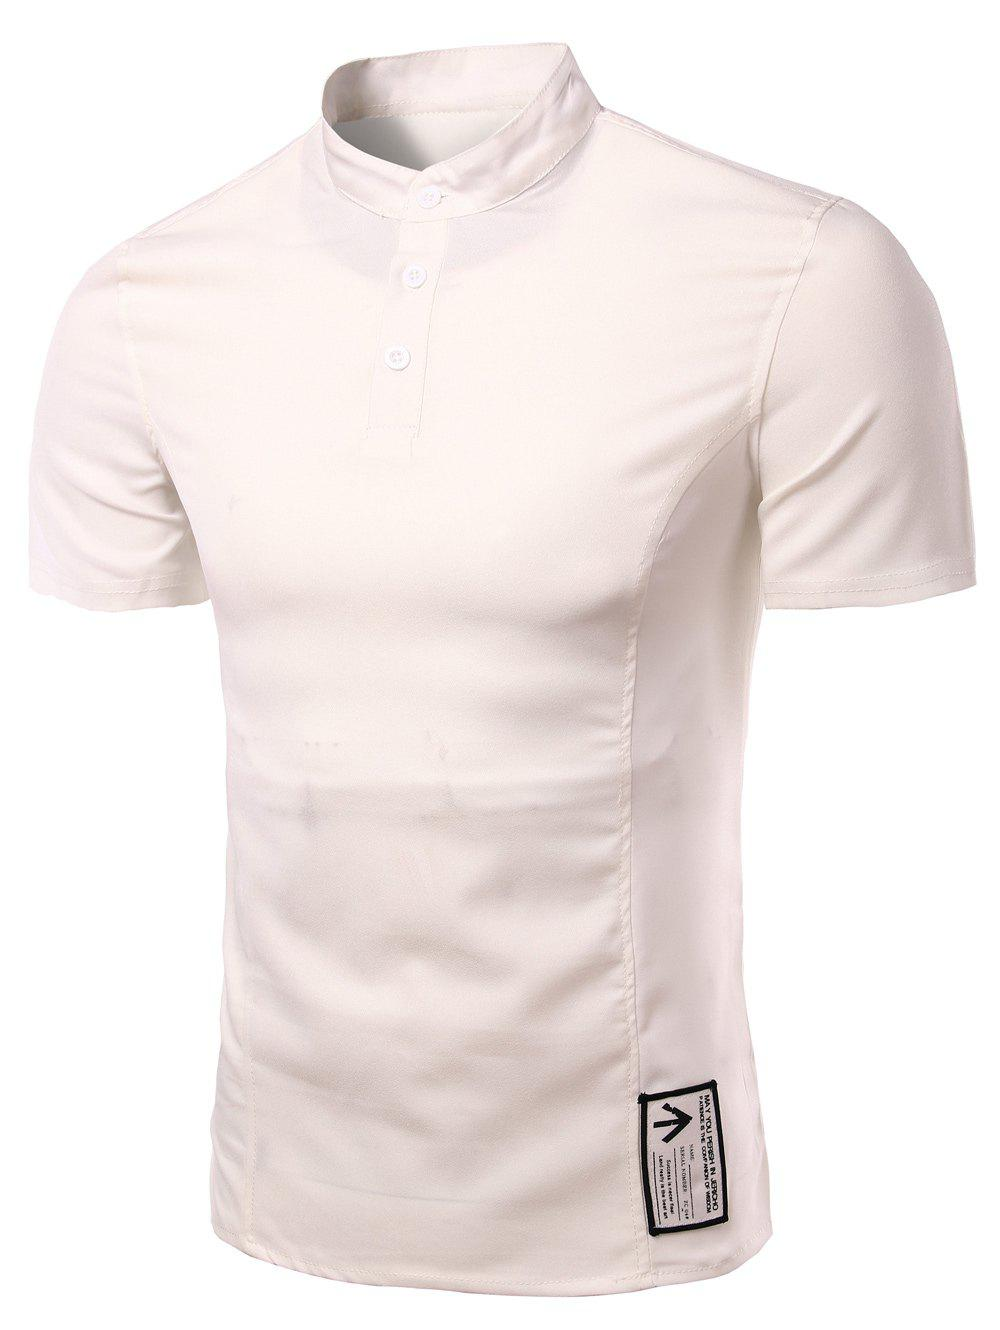 White trendy solid color button design henley shirt for for Solid color button up shirts